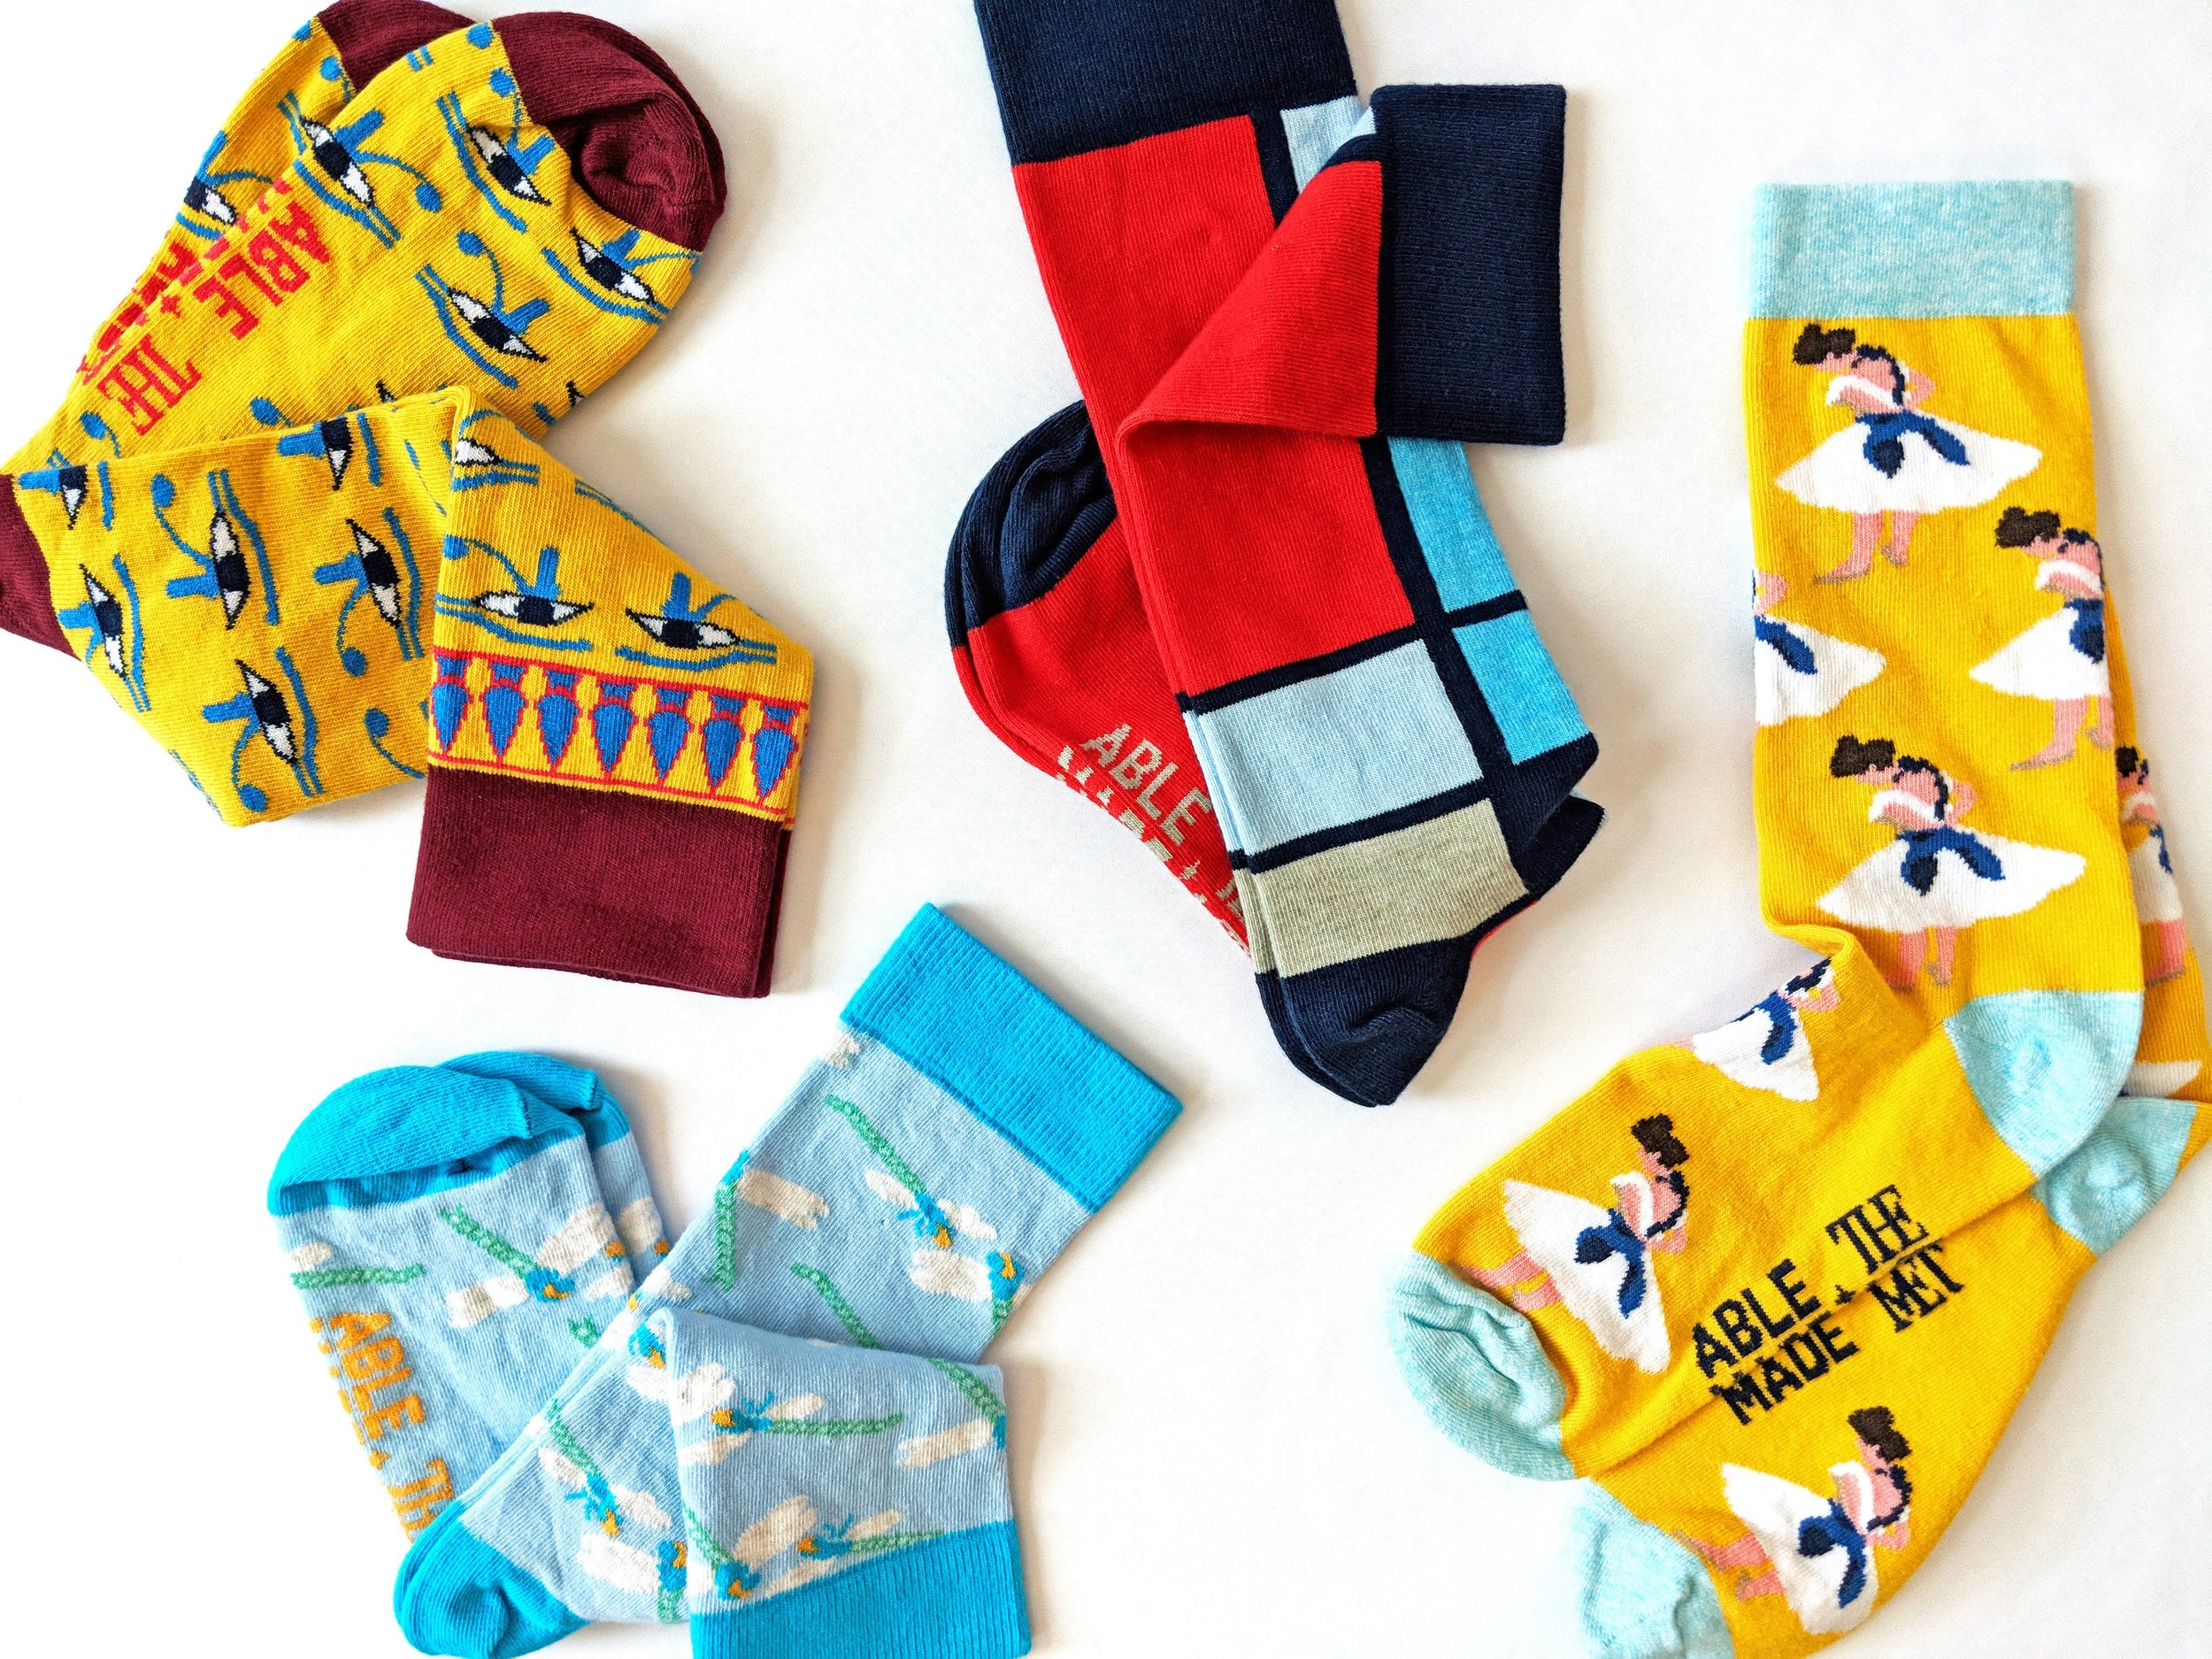 Just a sampling of the vivid assortment of socks from the Able Made x The Met collection - Photo Credit: The Sock Review